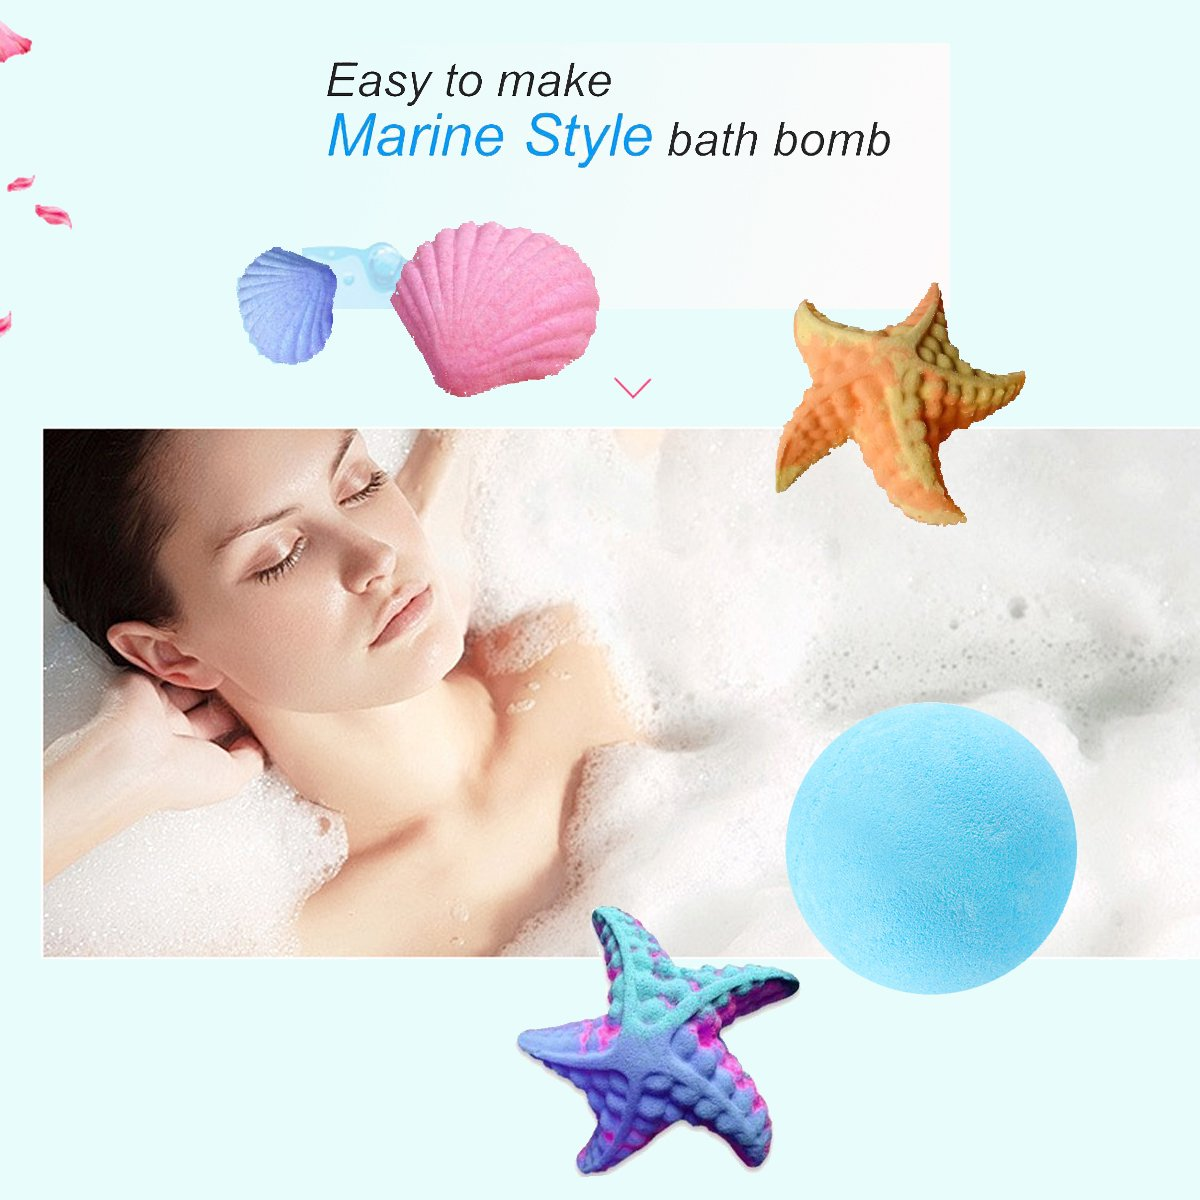 LAWOHO Metal Bath Bomb Mold DIY Handmade Soap Maker Kit Supplies 5 Set 10 Pieces with 100 Pieces Shrink Wrap Bags and 1 Pieces Mini Heat Sealer for Crafting your Own Fizzles